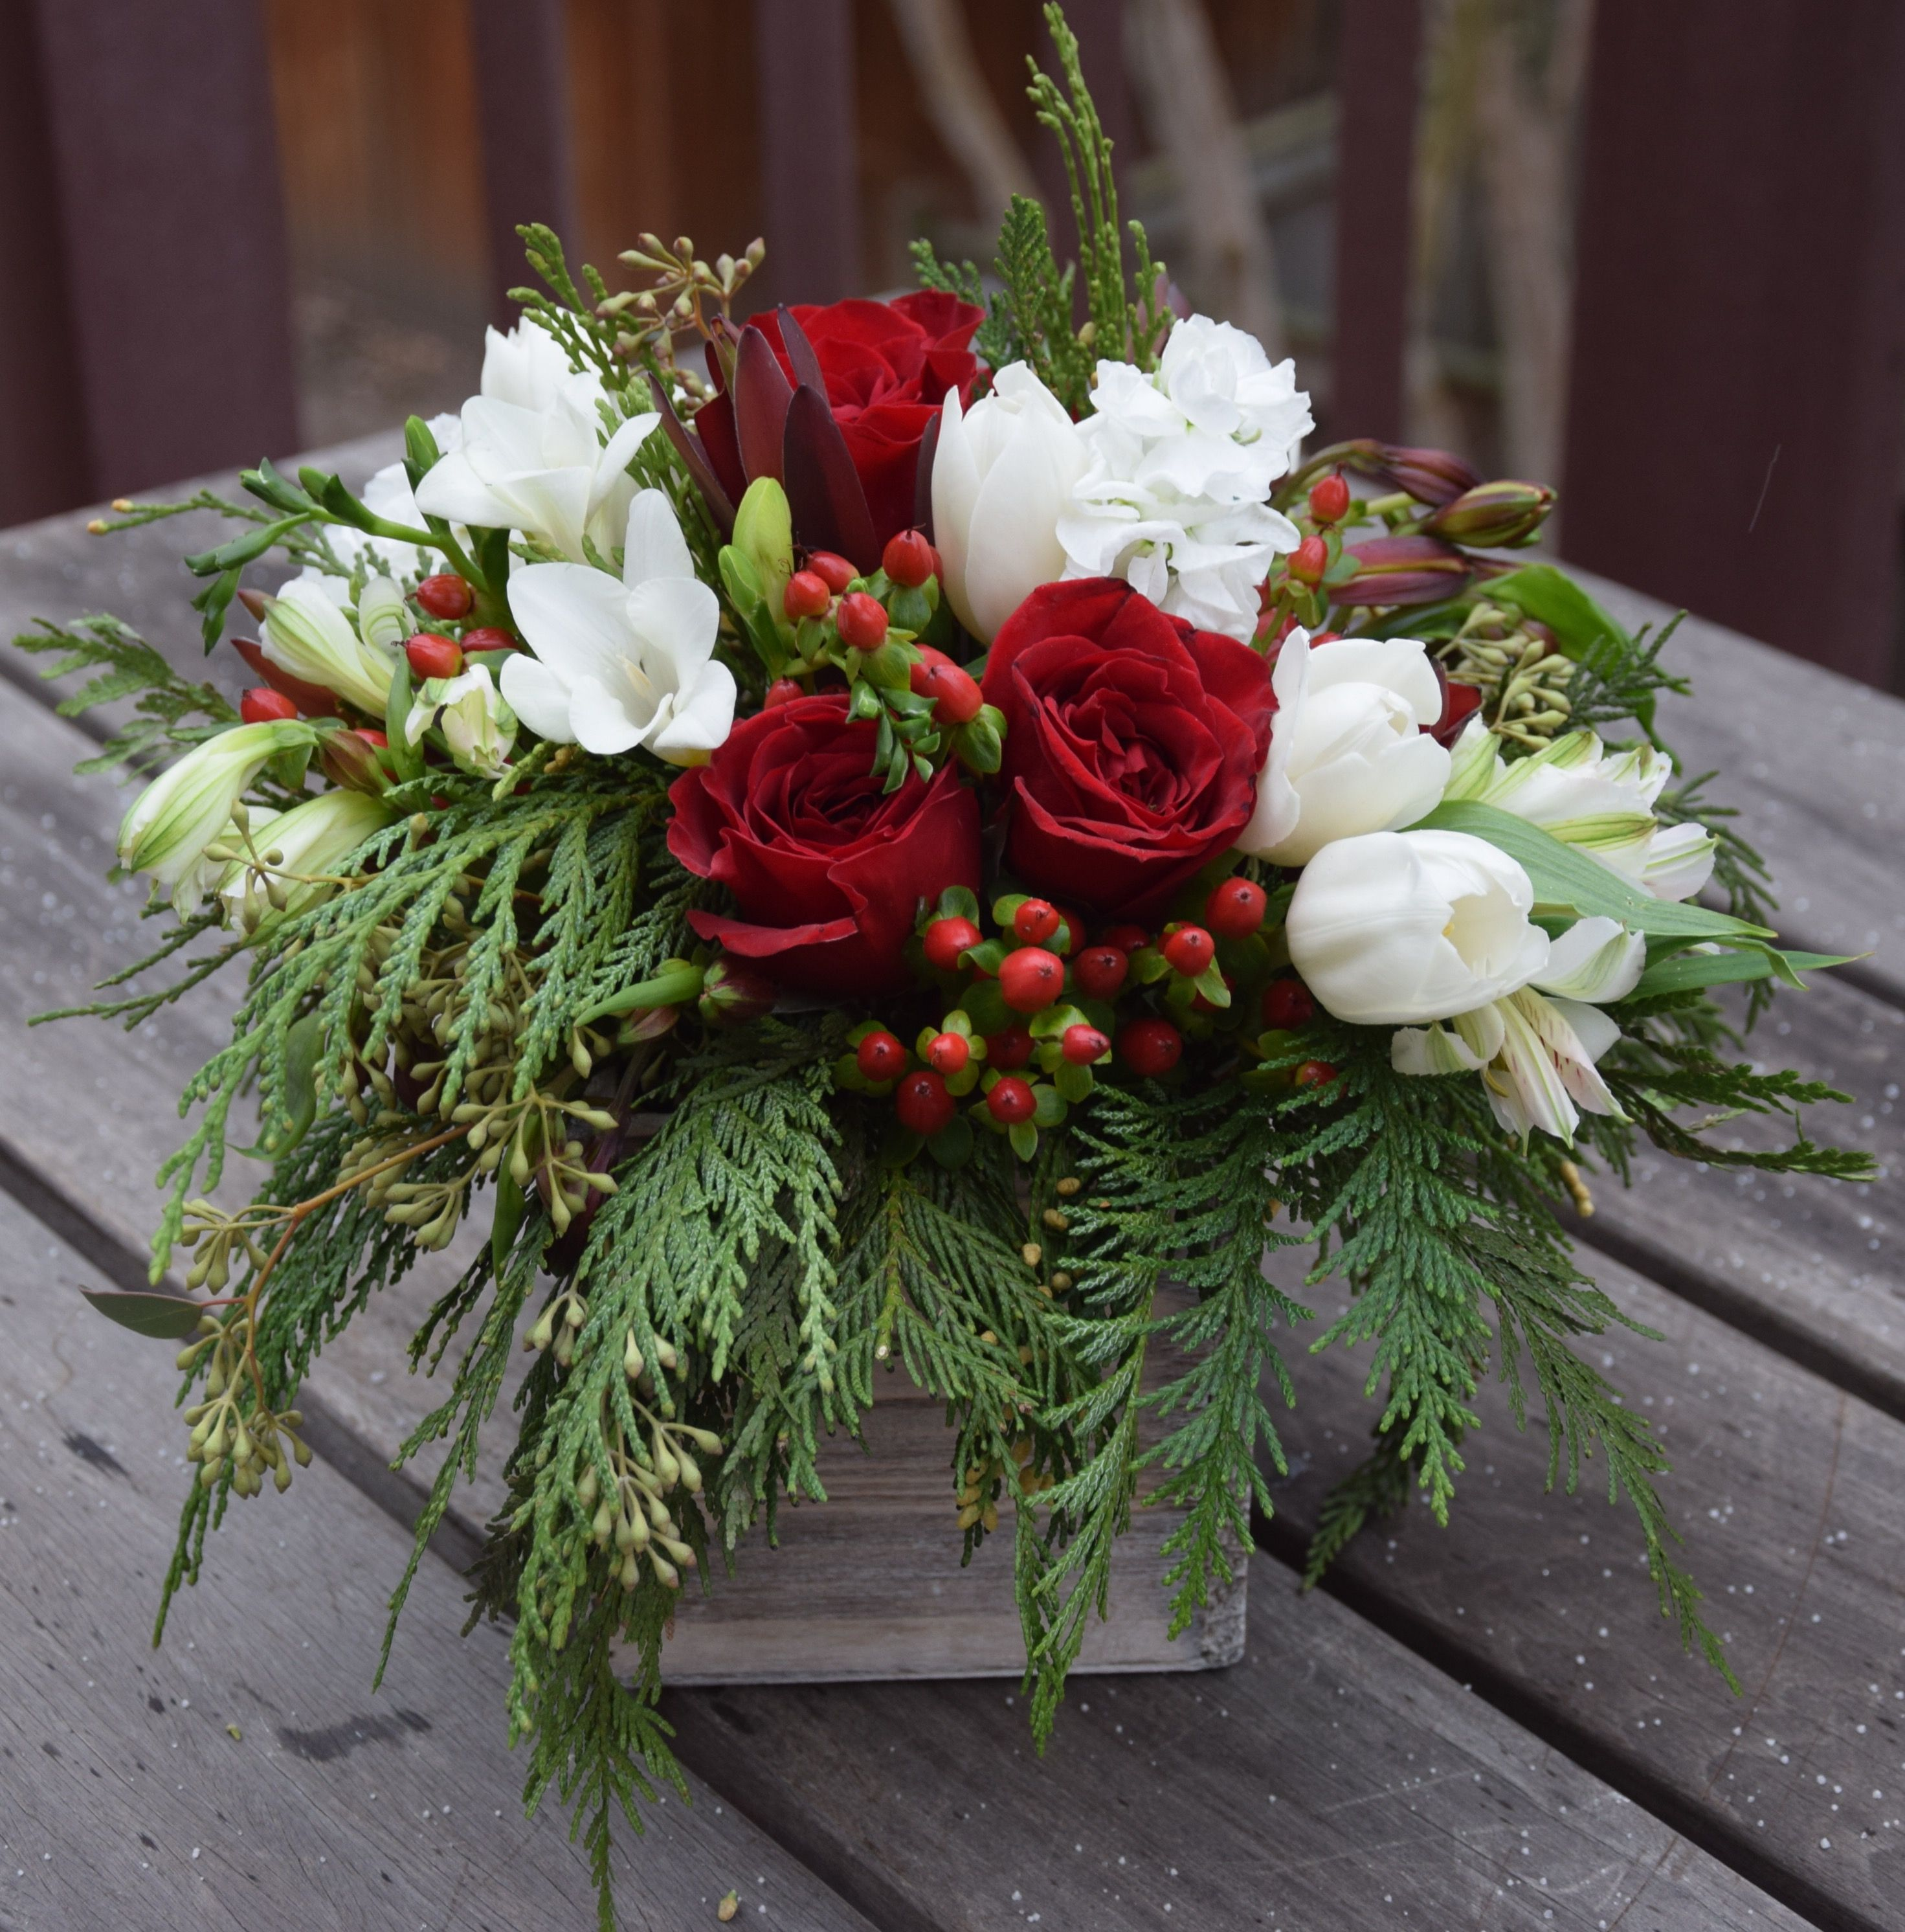 Holiday Christmas Flower Box Unique Gift Or A Table Floral Piec Christmas Floral Arrangements Christmas Flower Arrangements Christmas Floral Arrangements Diy